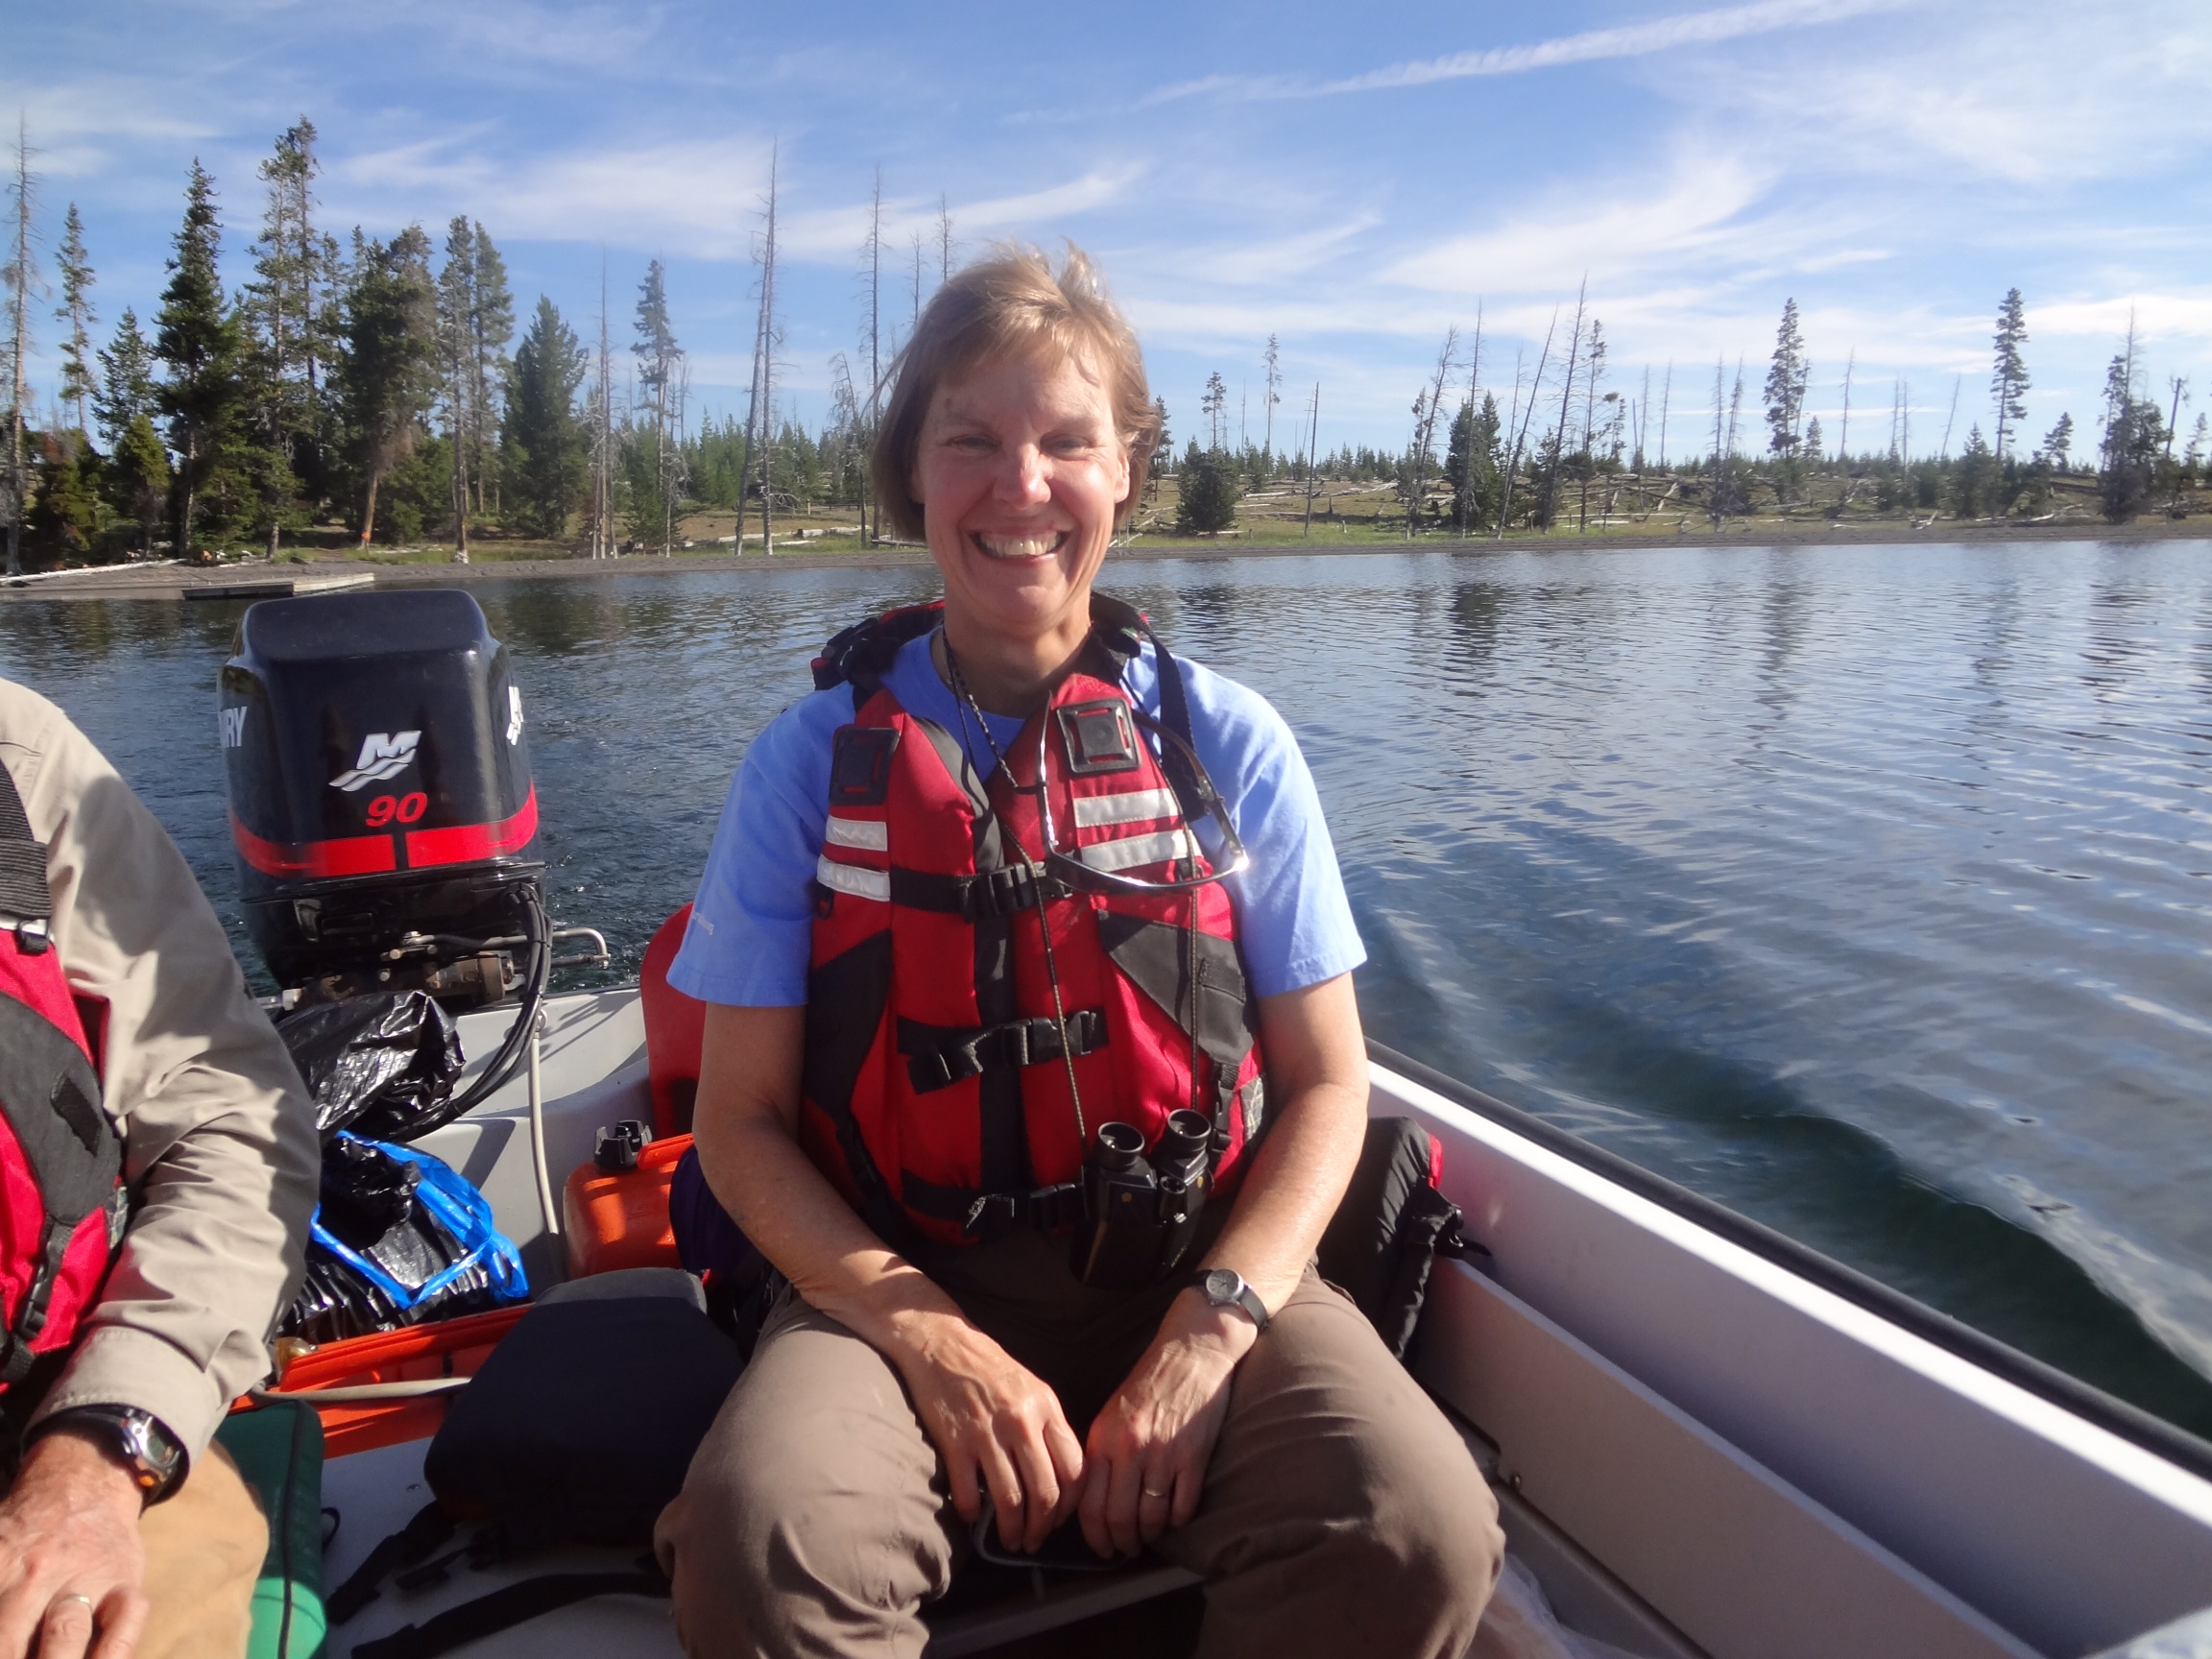 Landscape ecologist Monica Turner travels in her team's boat, PICO1, across Yellowstone Lake in Yellowstone National Park in July 2012 to access long-term study plots in areas that burned during the 1988 Yellowstone Fires. Named for Pinus contorta, the lodgepole pines that dominate Yellowstone's forests, PICO1 gets Turner and her group to remote study areas that are more easily reached from the lakeshore. The July trip was part of a major resampling of long-term plots 25 years after the 1988 fires. Turner took over the presidency of the Ecological Society of America in August, 2015, and will serve one year. Credit, Monica Turner.